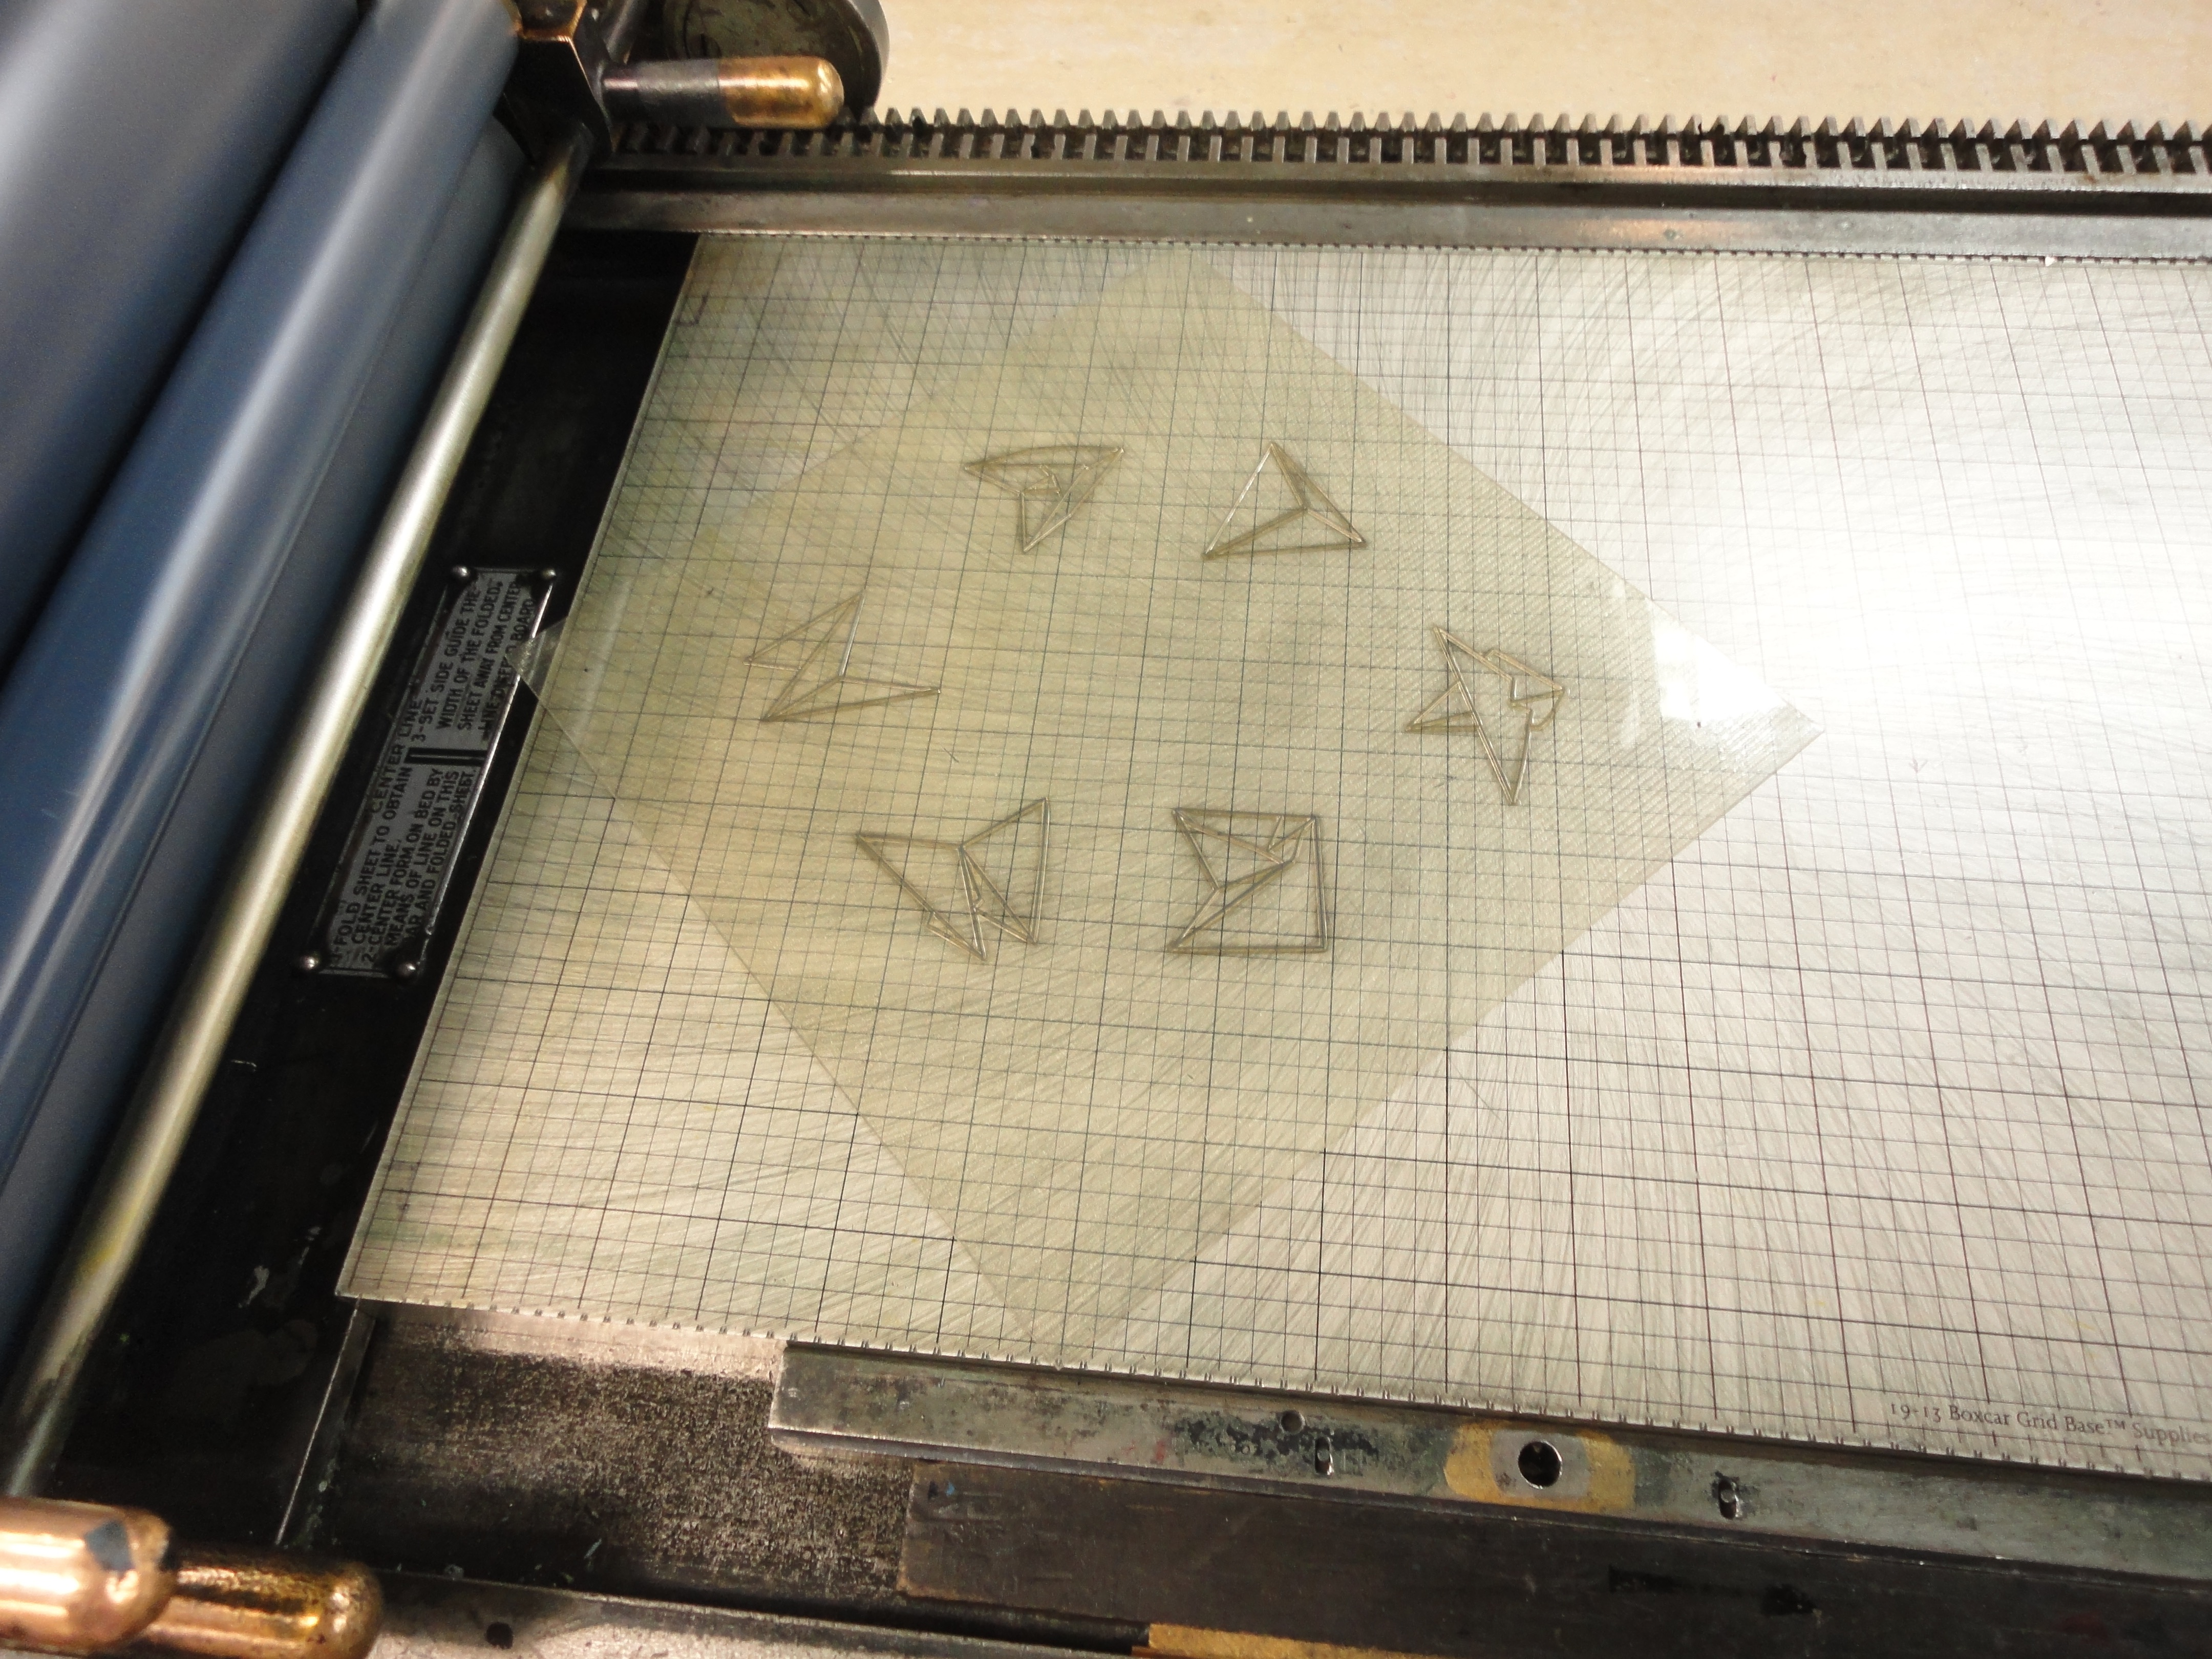 Letterpress printing using polymer plates.